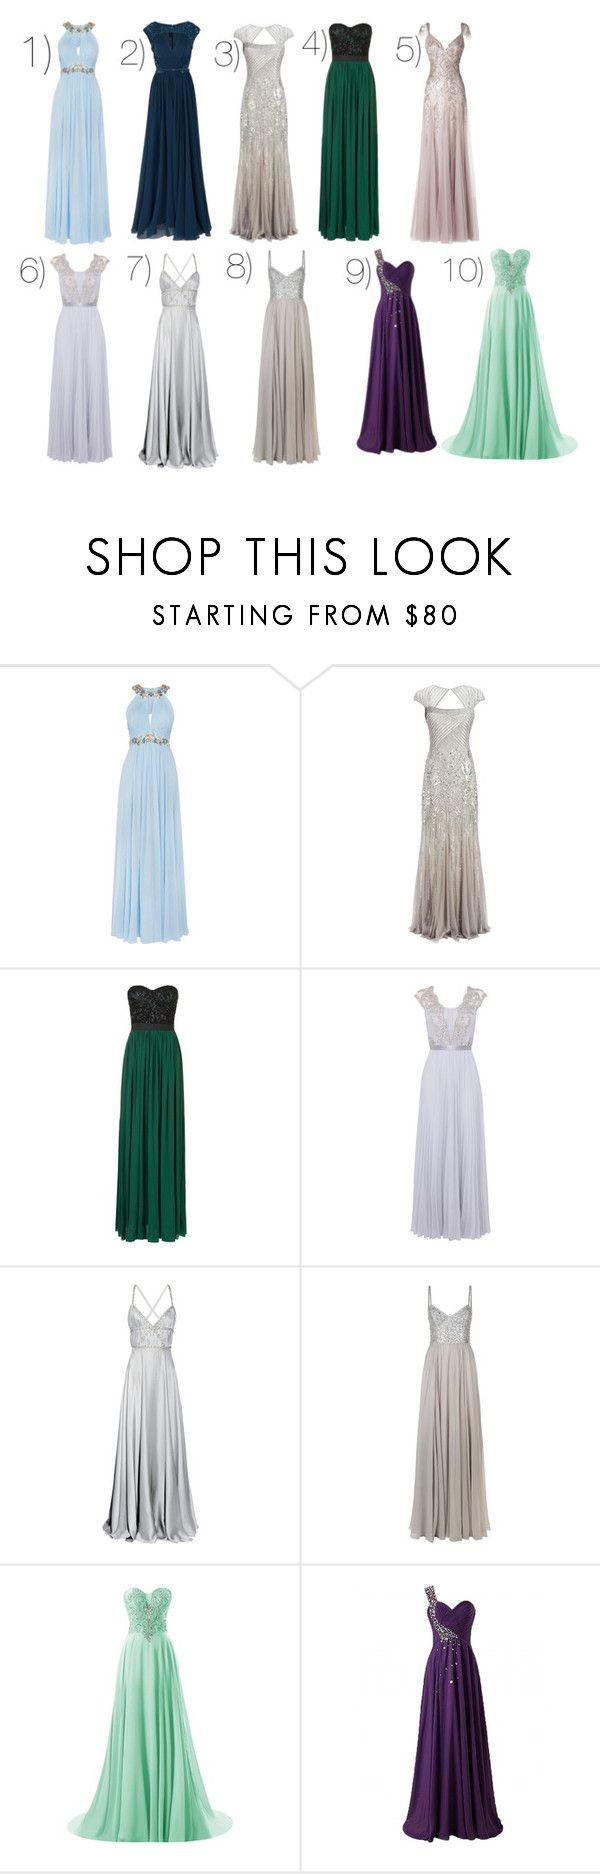 """Which one? For the Yule Ball"" by moon-crystal-wolff ❤ liked on Polyvore featuring Notte by Marchesa, Elie Saab, Adrianna Papell, Rare London, Avance, Coast, Azzaro and Jenny Packham"